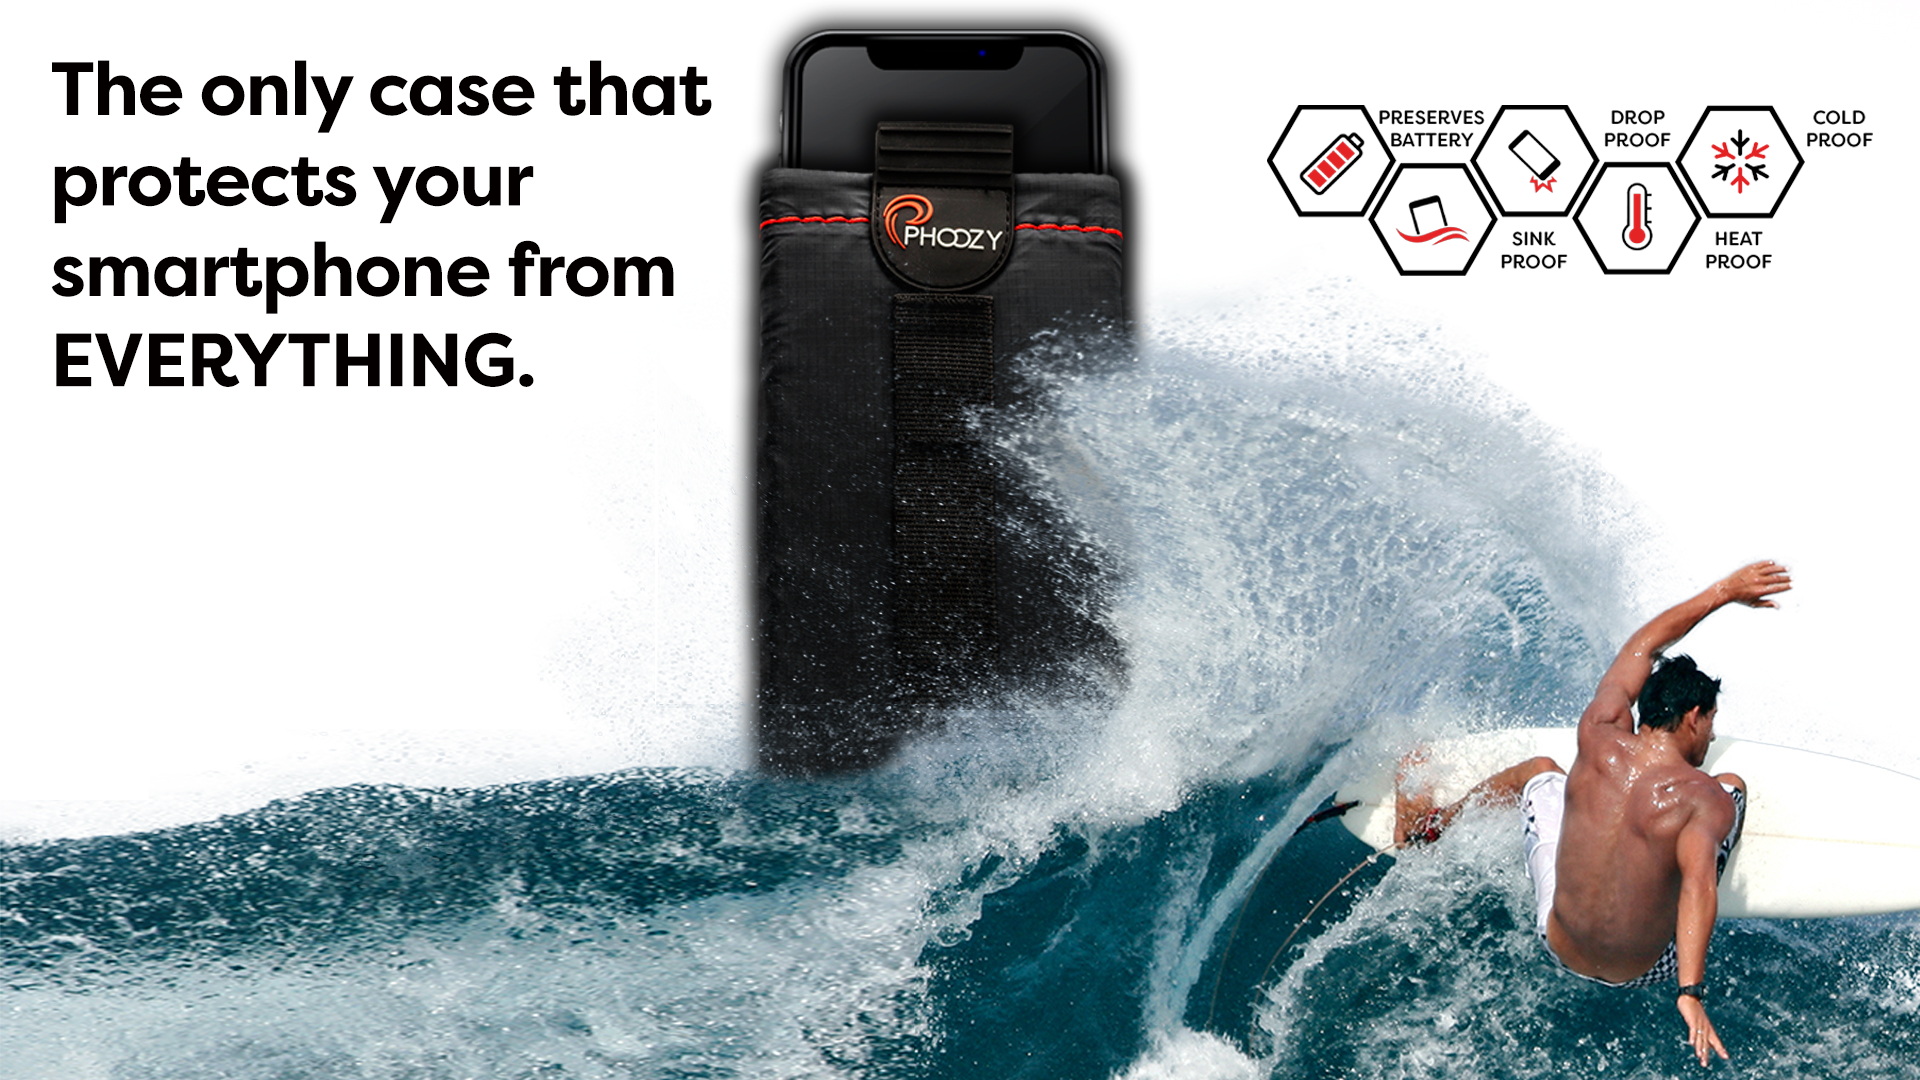 PHOOZY, the only phone case that protects your smartphone from everything.  Surfer splashing water on PHOOZY XP3 Series Thermal Capsule